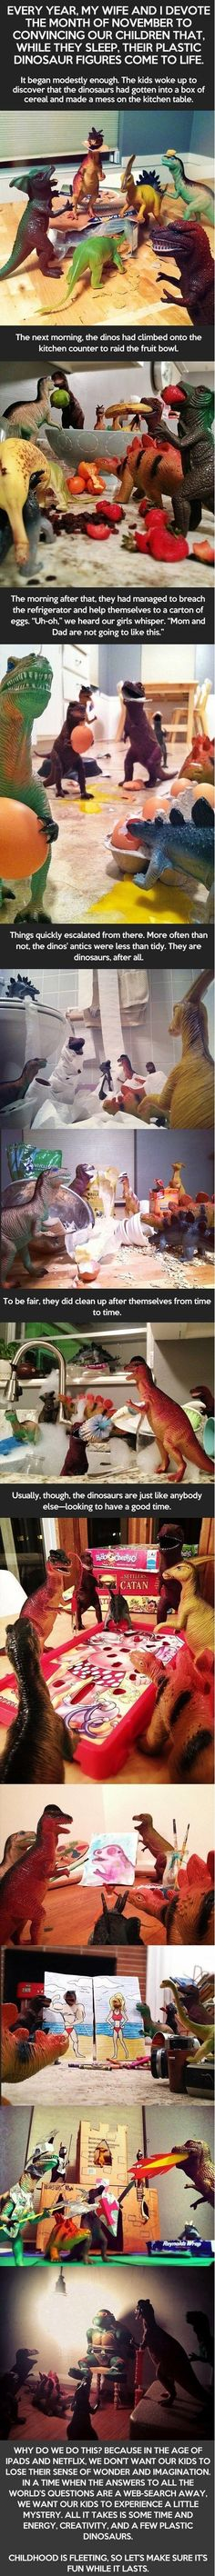 parents, remember this, parenting done right, toys, thought, children, future kids, dinosaurs, parenting win